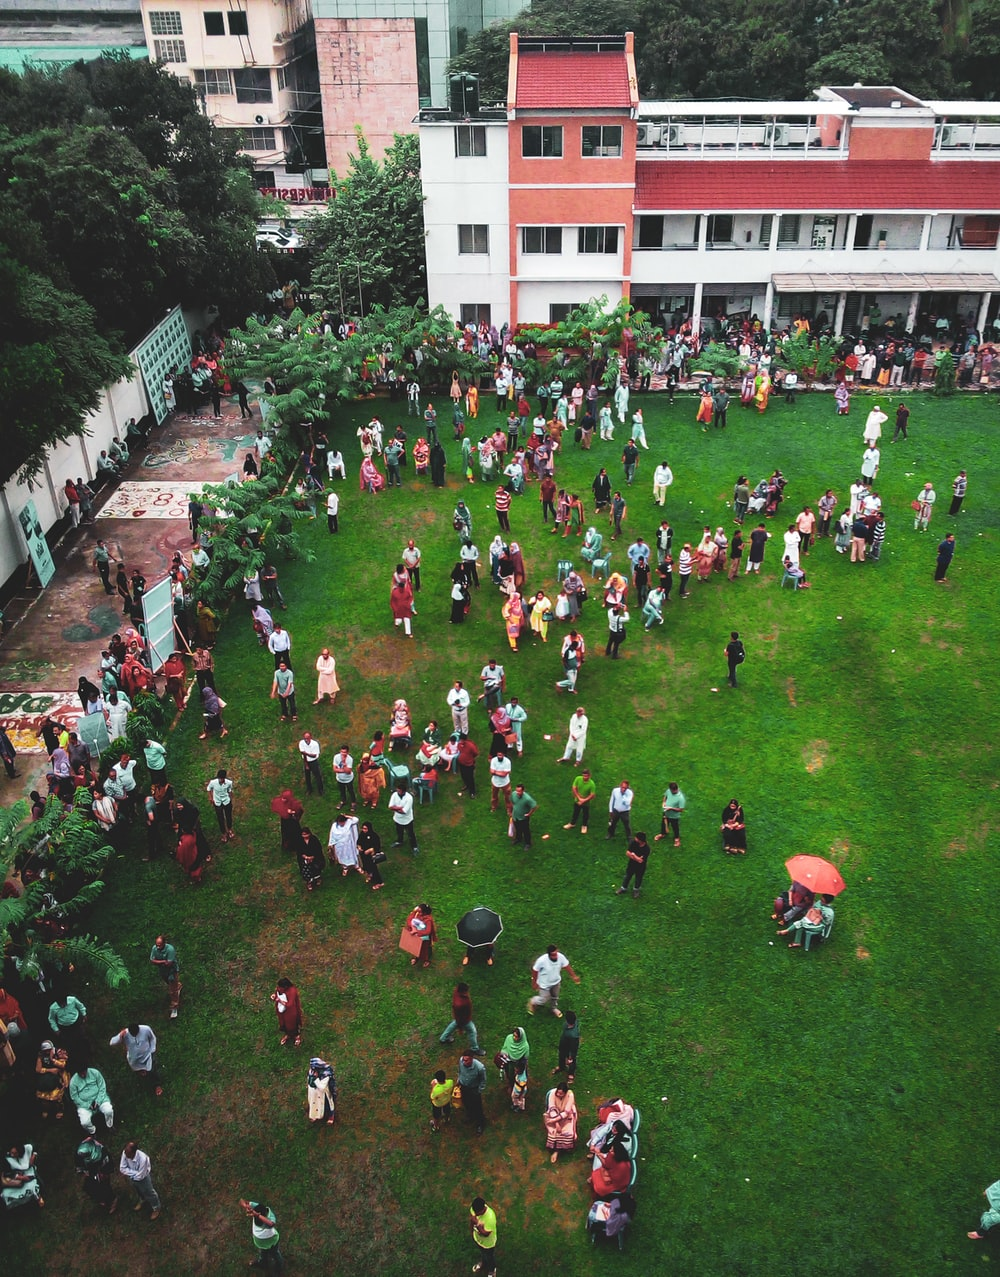 aerial photography of people walking on green field near white and red concrete 3-story building during daytime